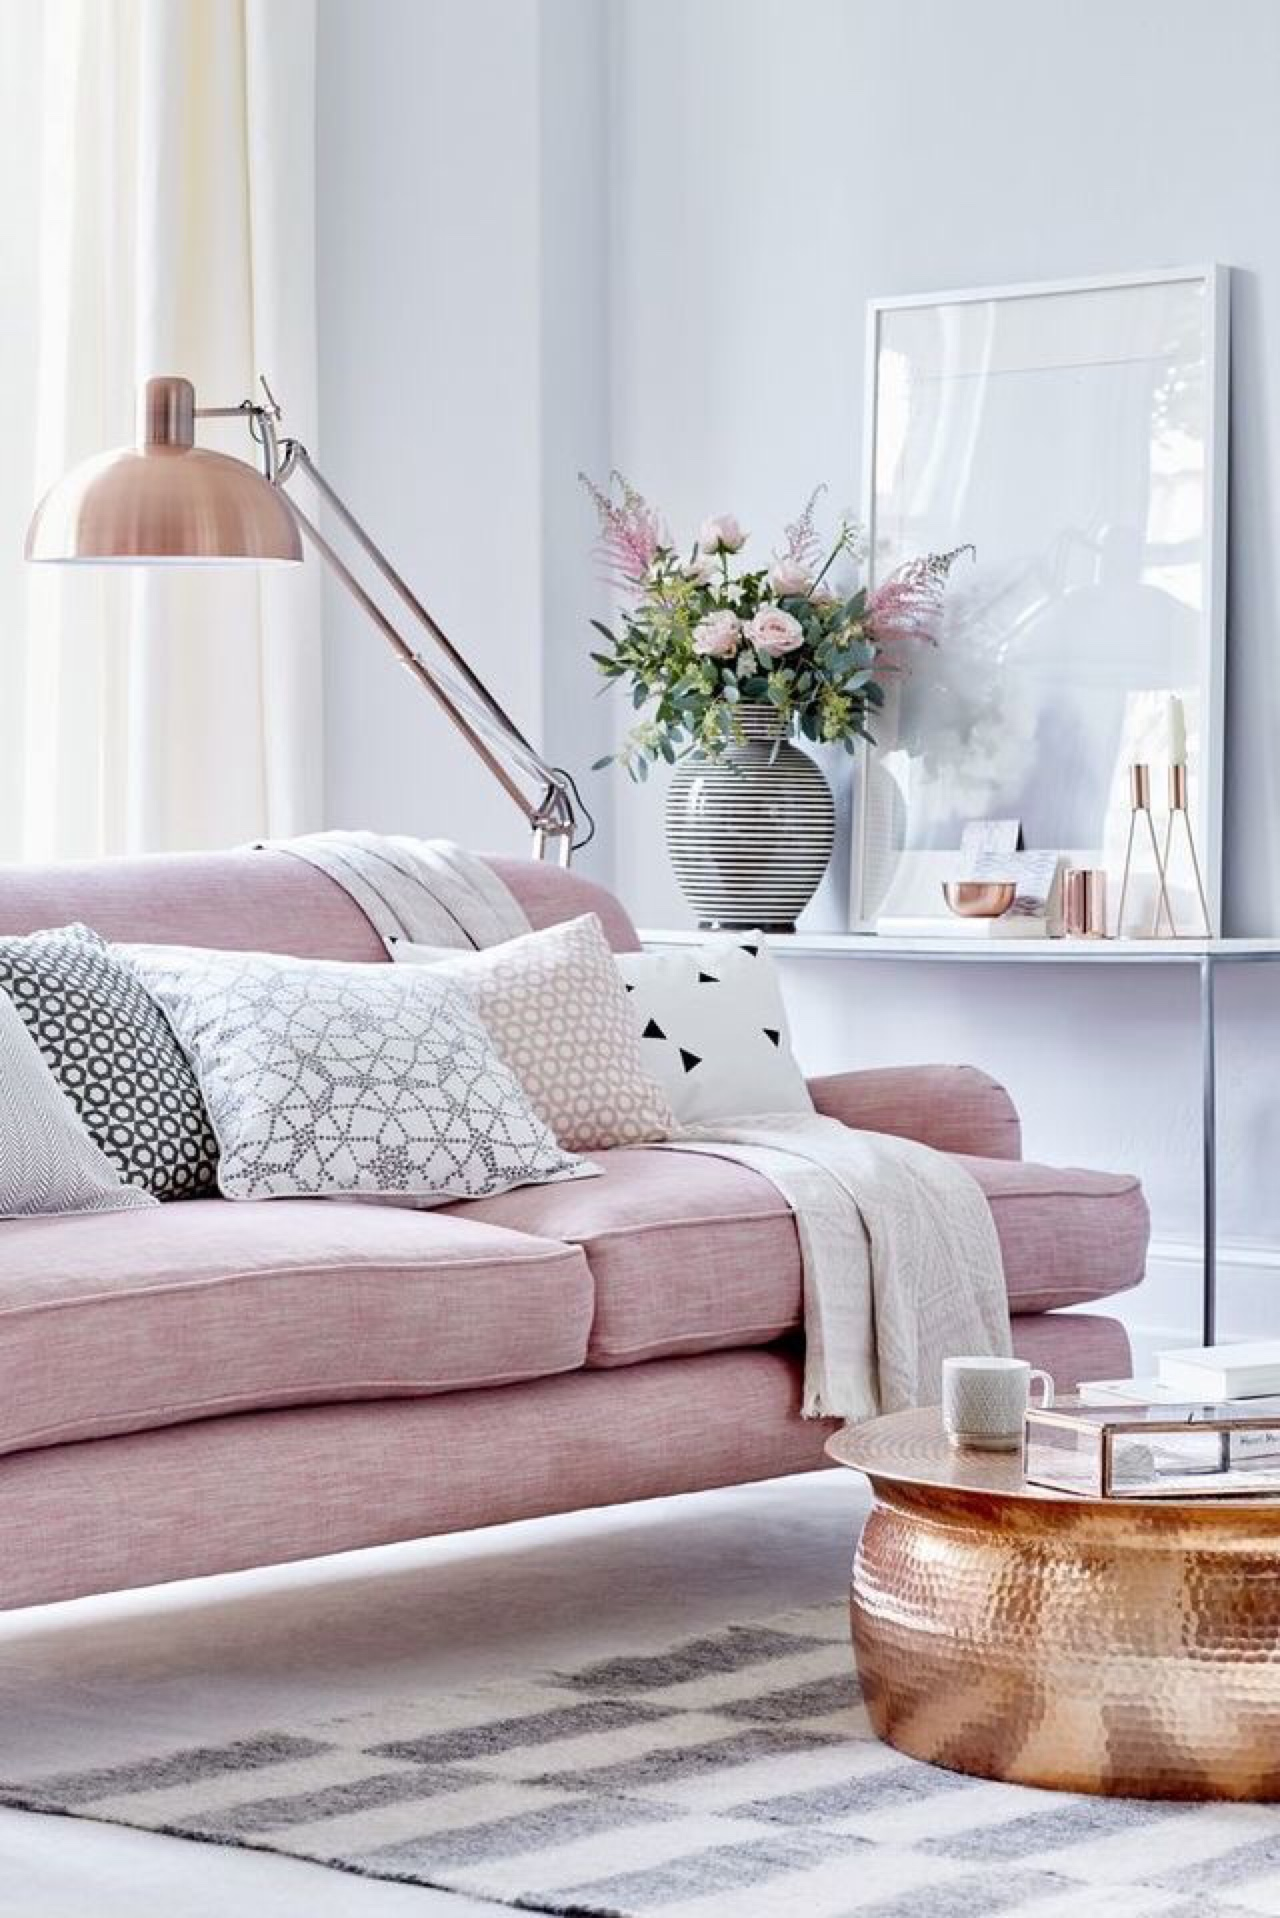 living room 10 Refreshing Ways to Redecorate your Living Room for Summer 10 Refreshing Ways to Redecorate your Living Room for Summer5